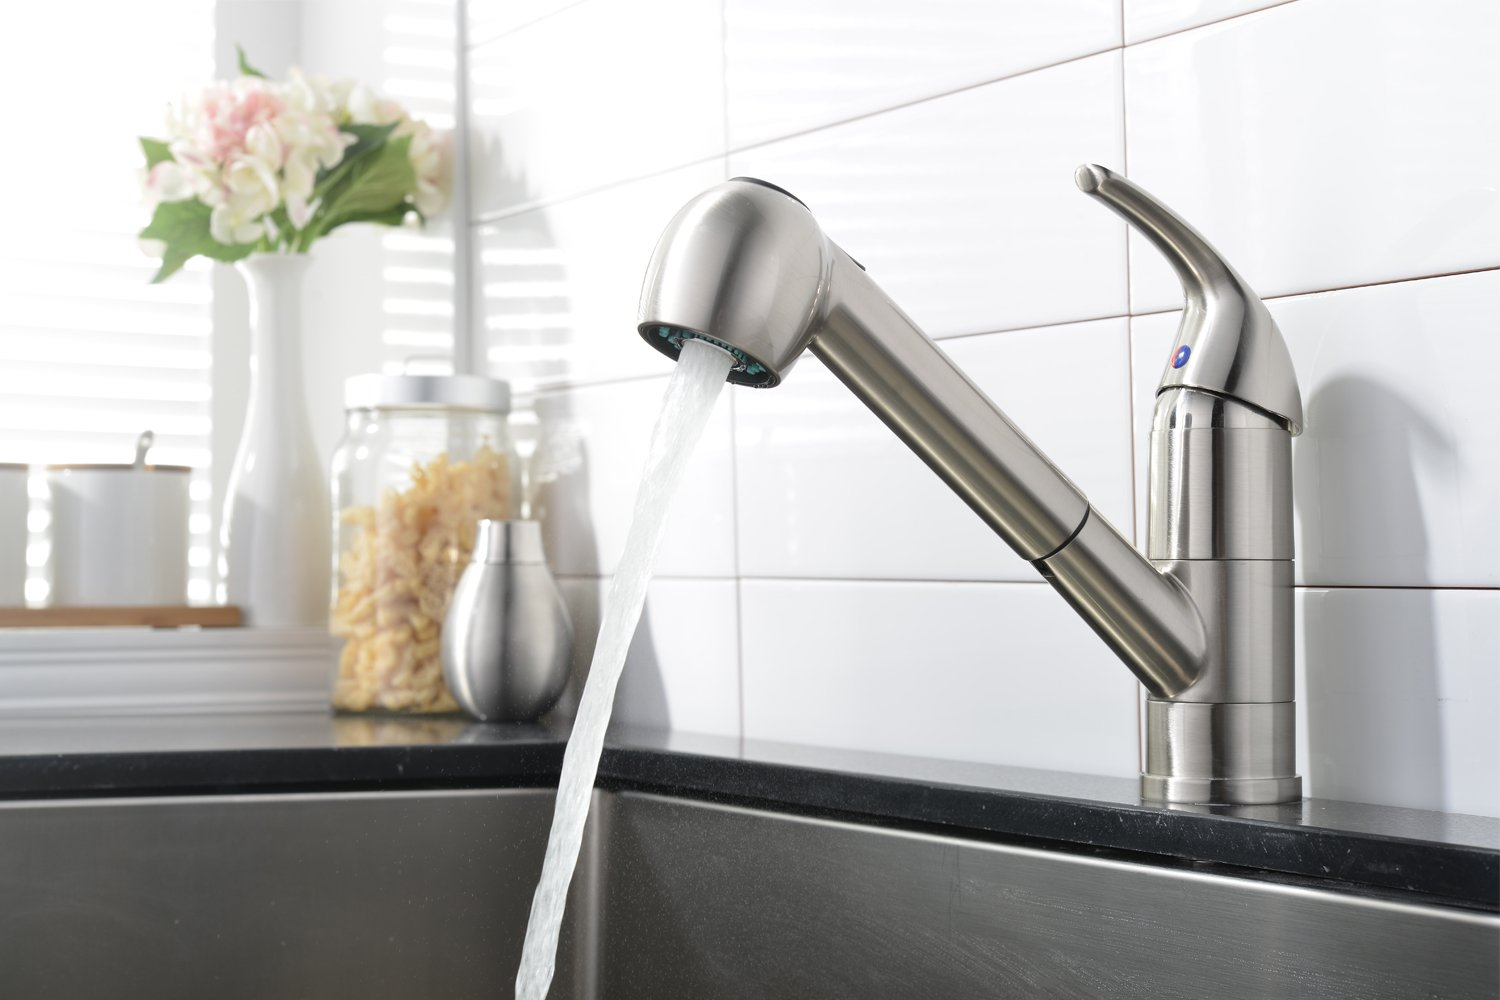 comllen commercial stainless steel single handle pull out kitchen faucet single lever pull down brushed nickel kitchen faucets without deck plate